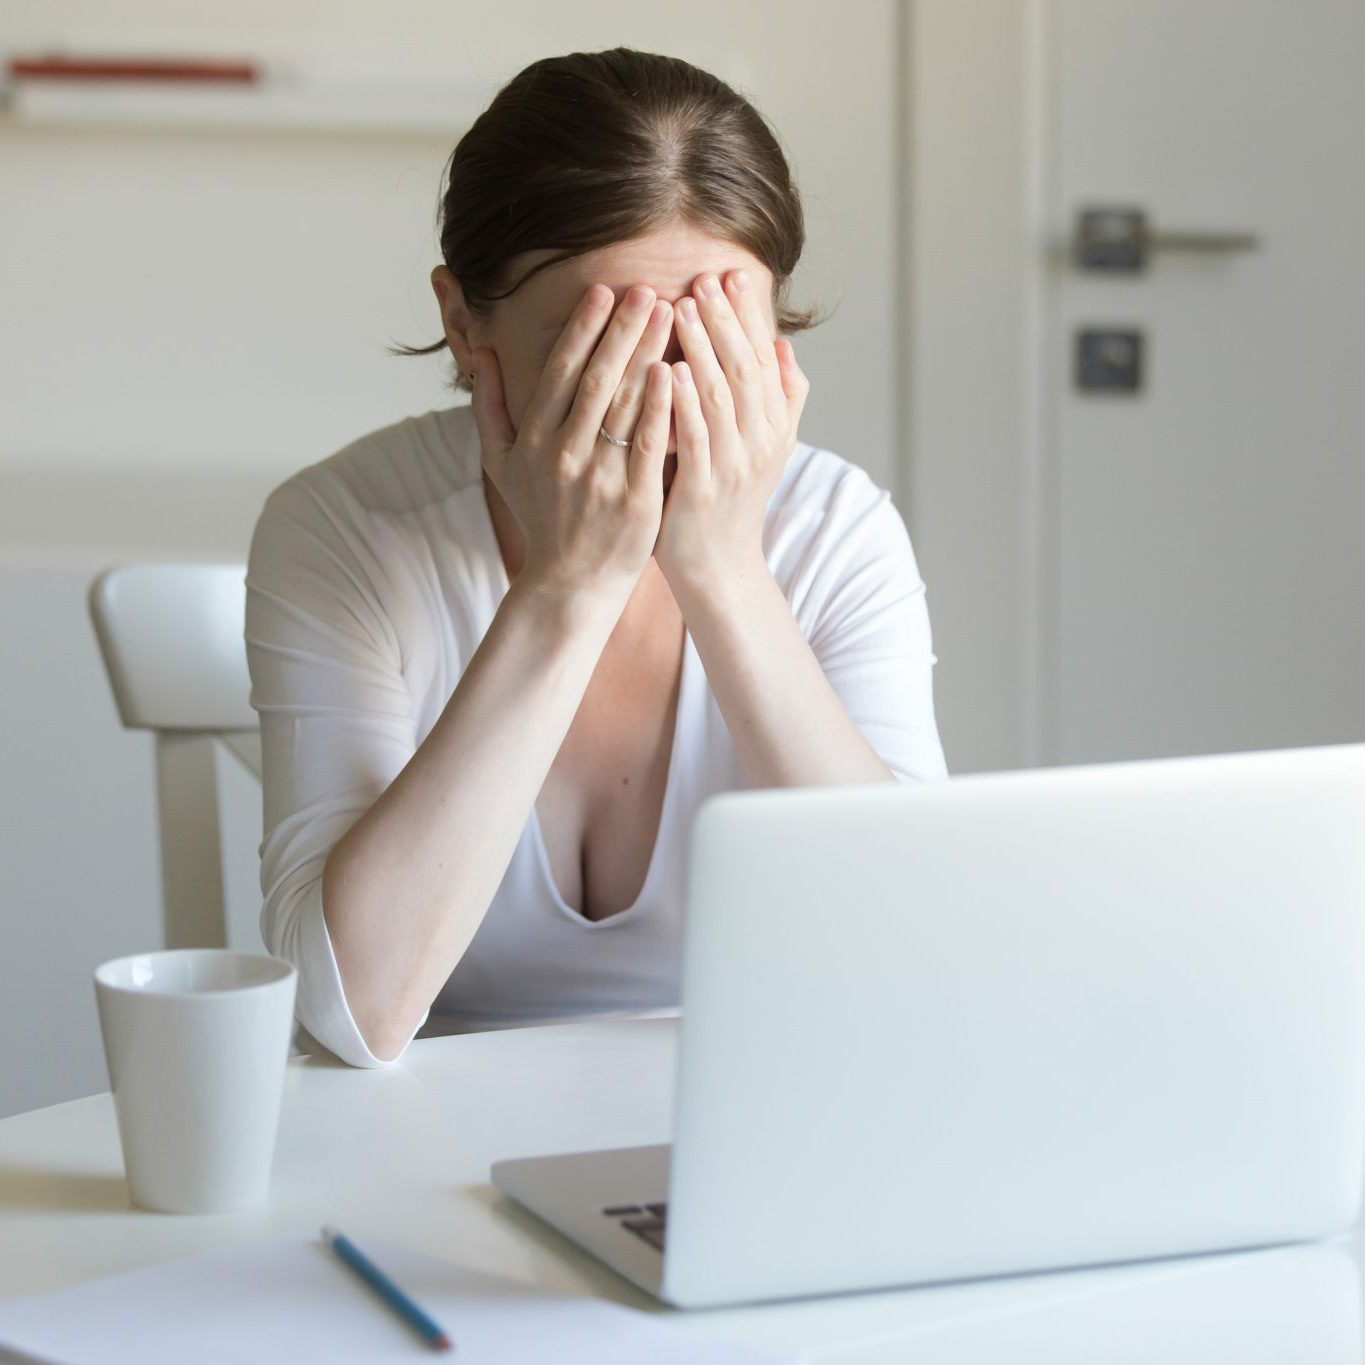 Portrait of a young woman at the desk with a laptop, her hands closing her face. Business concept photo, lifestyle